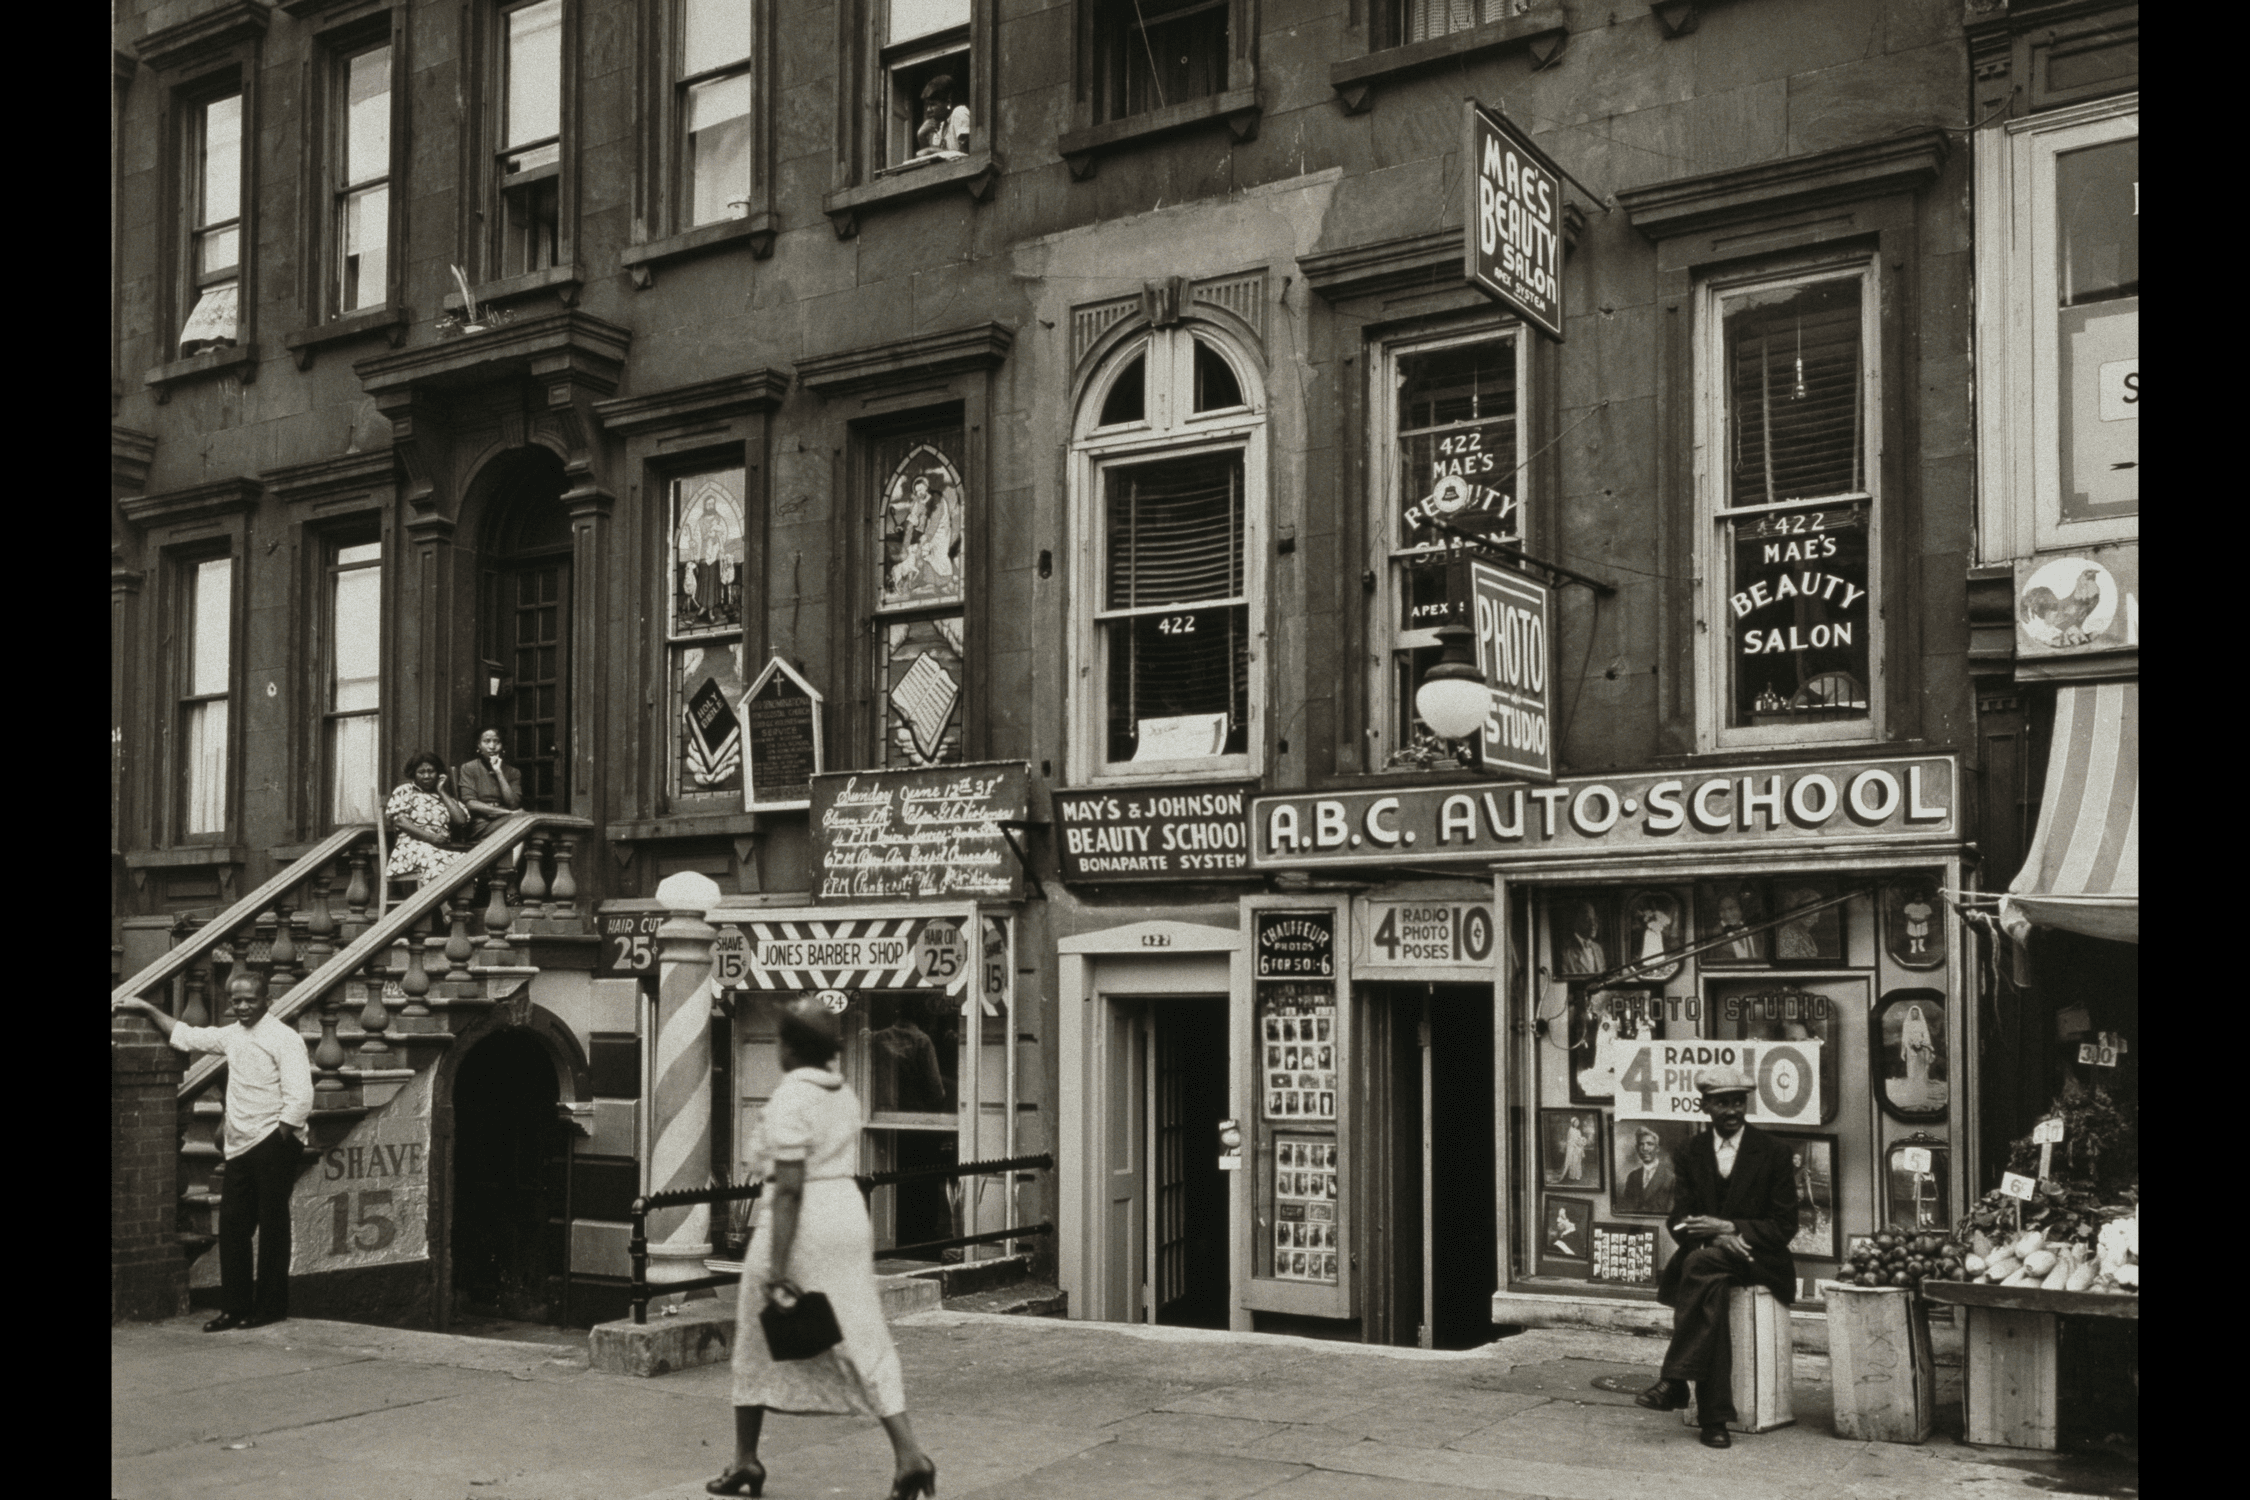 A view of storefronts on the 420 block of Lenox Avenue, Harlem, New York City, 14th June 1938. There is a barber shop, a beauty school, an auto school and a deli.